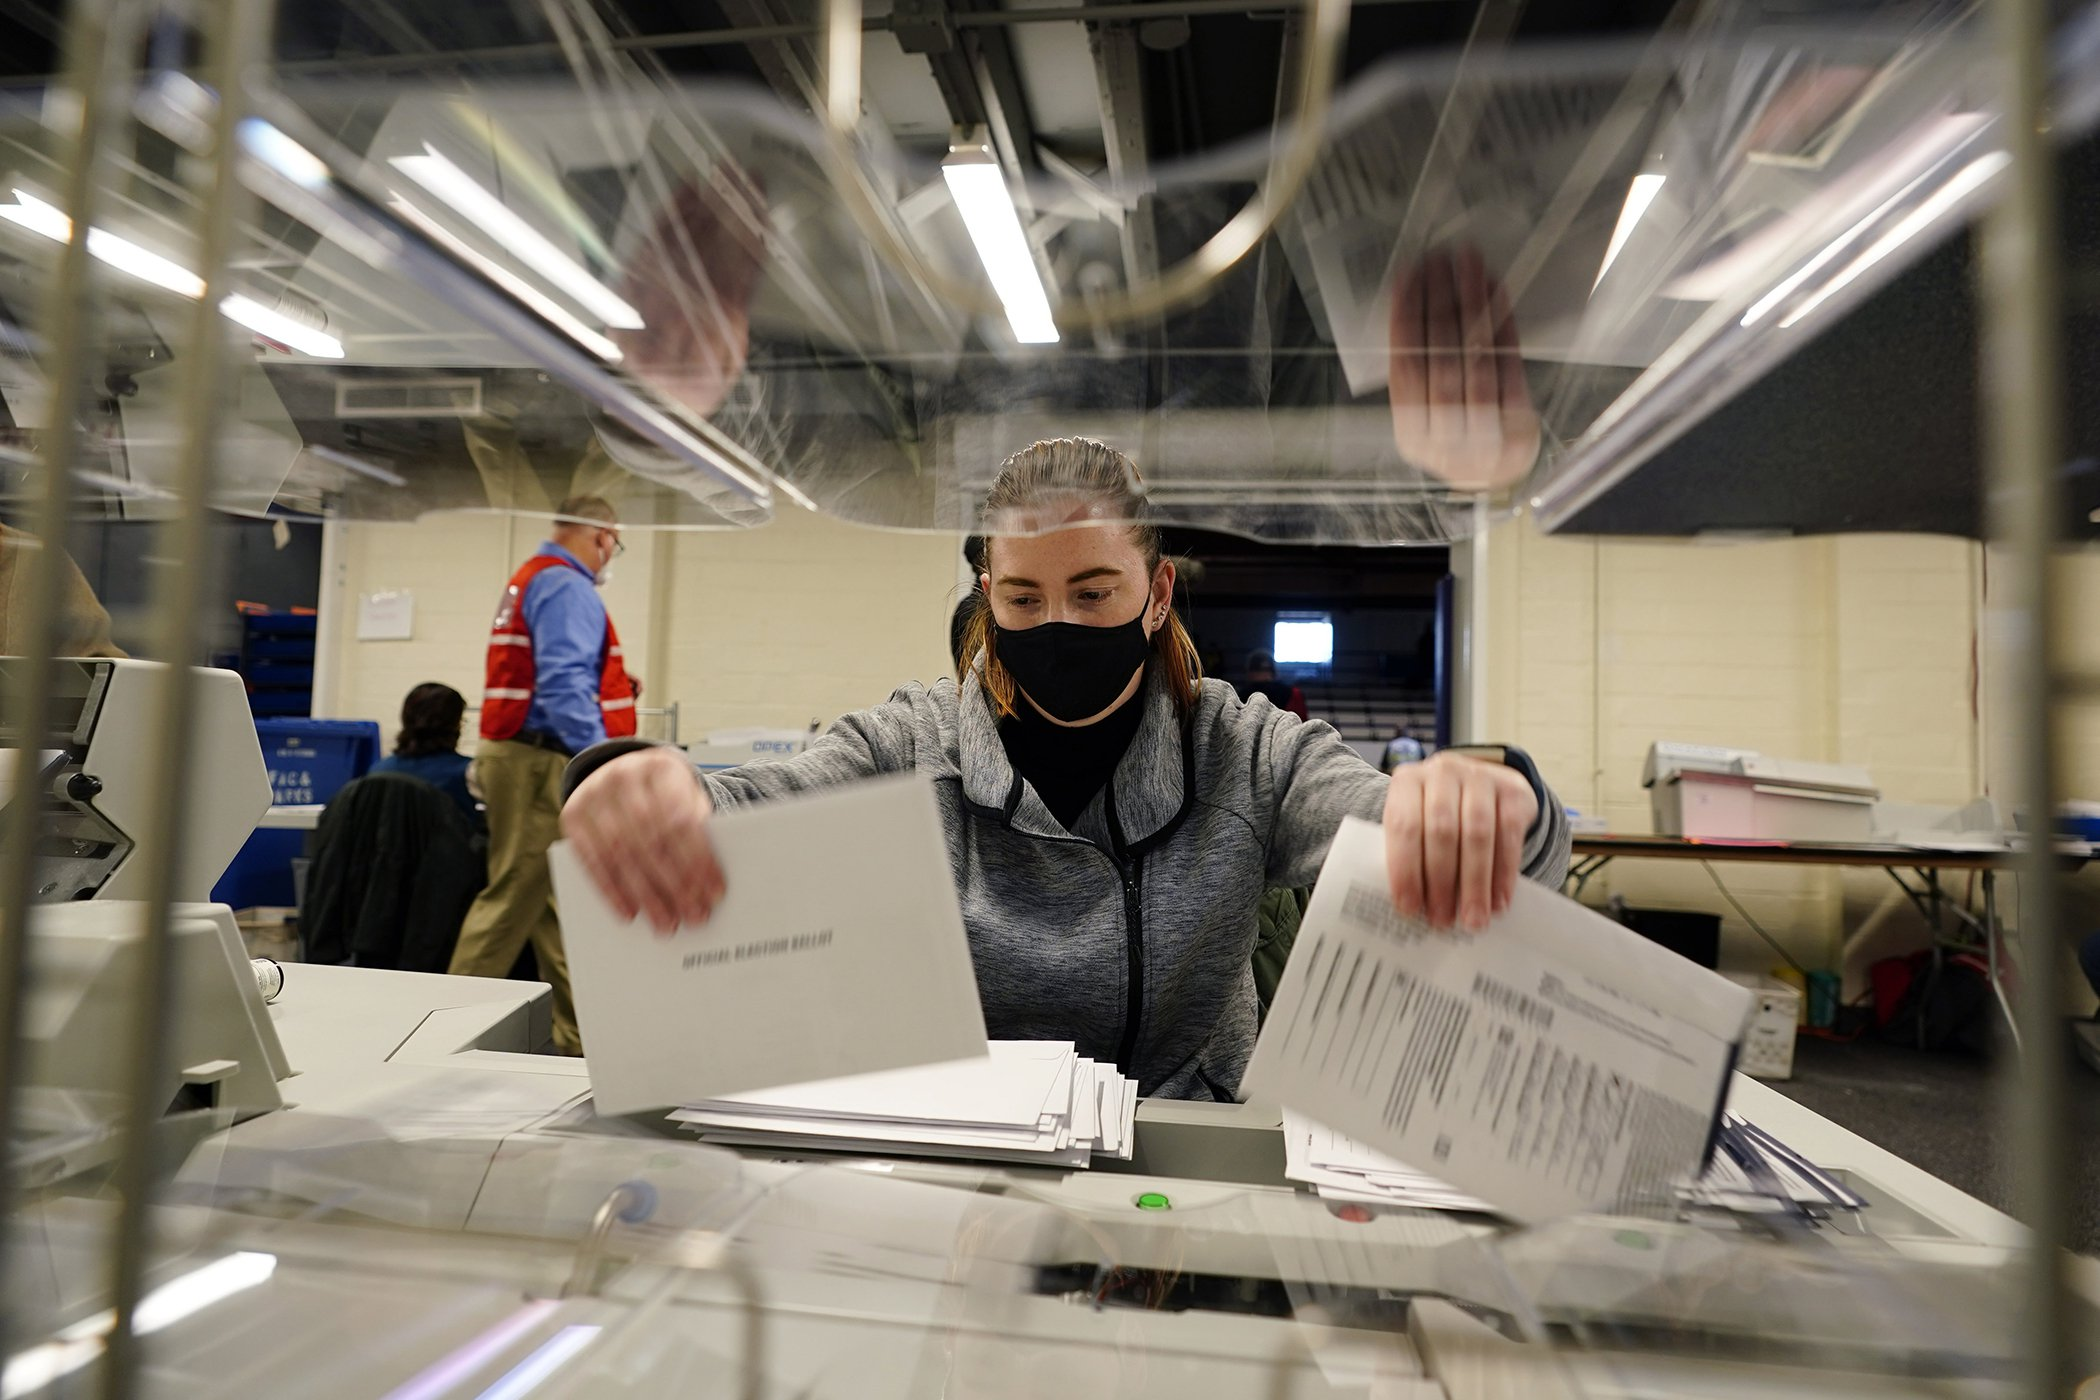 Election-2020-Every-Vote-Counts-Aftermath-002.jpg